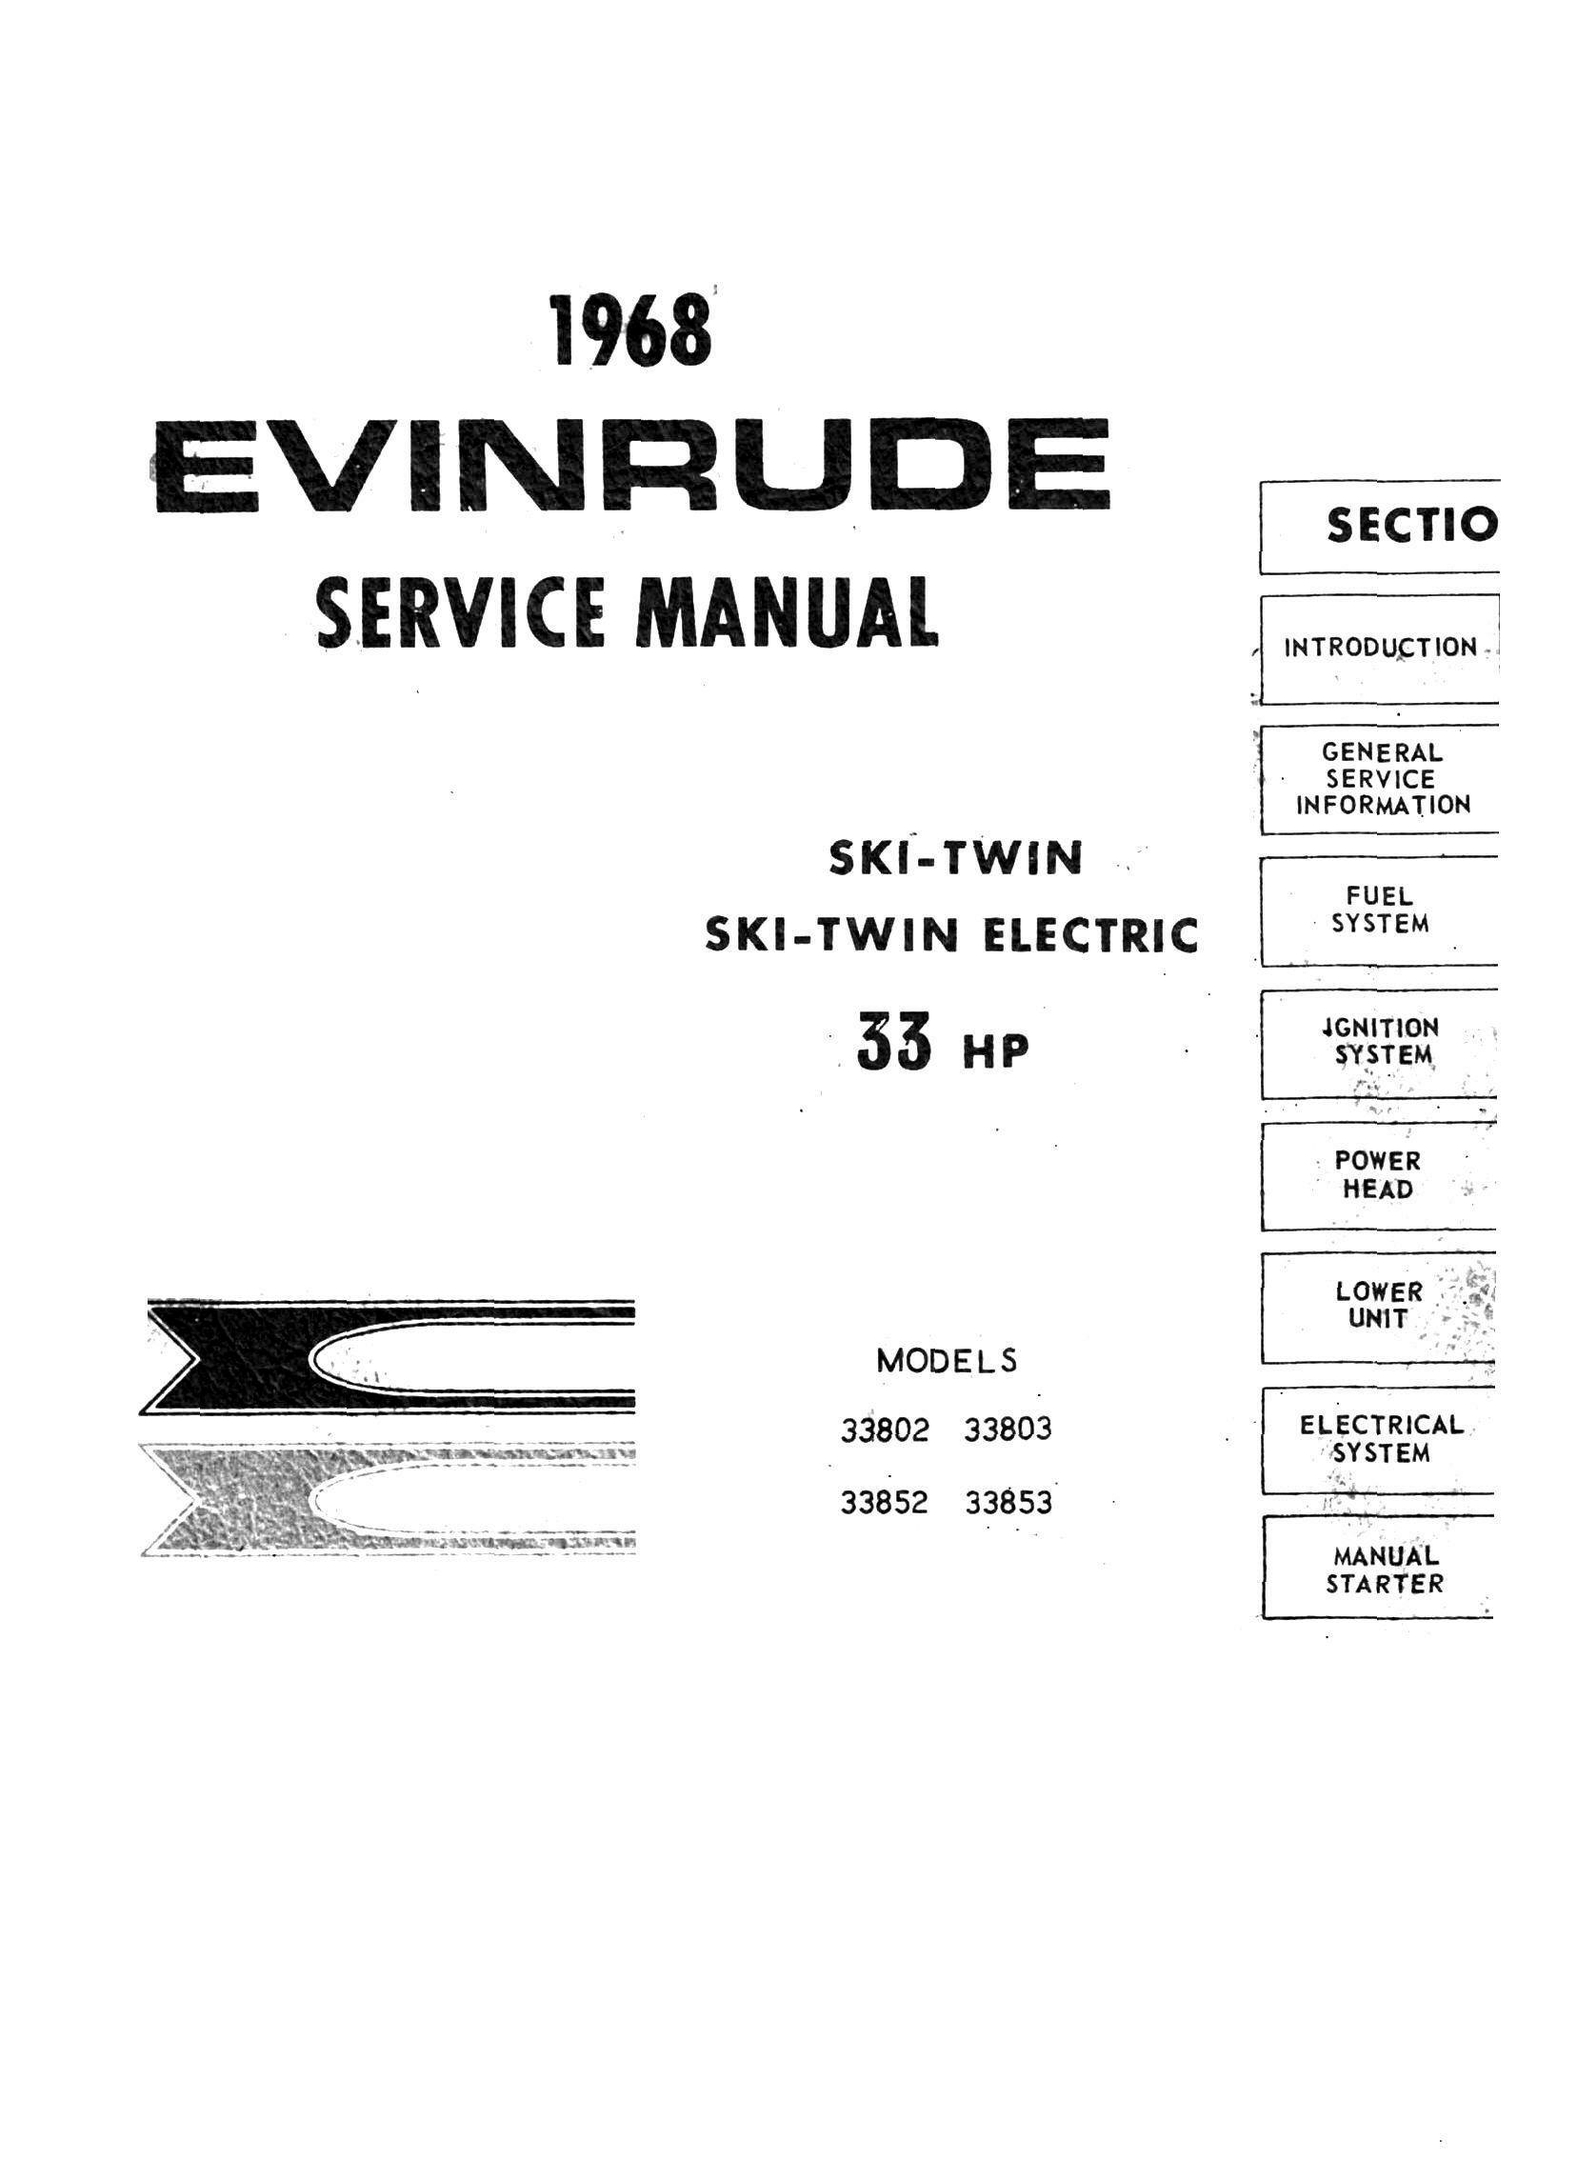 bosch dynastart wiring diagram how to do a flow villiers siba manuals for mechanics evinrude 33 hp ski twin 338 series 1968 service and repair manual